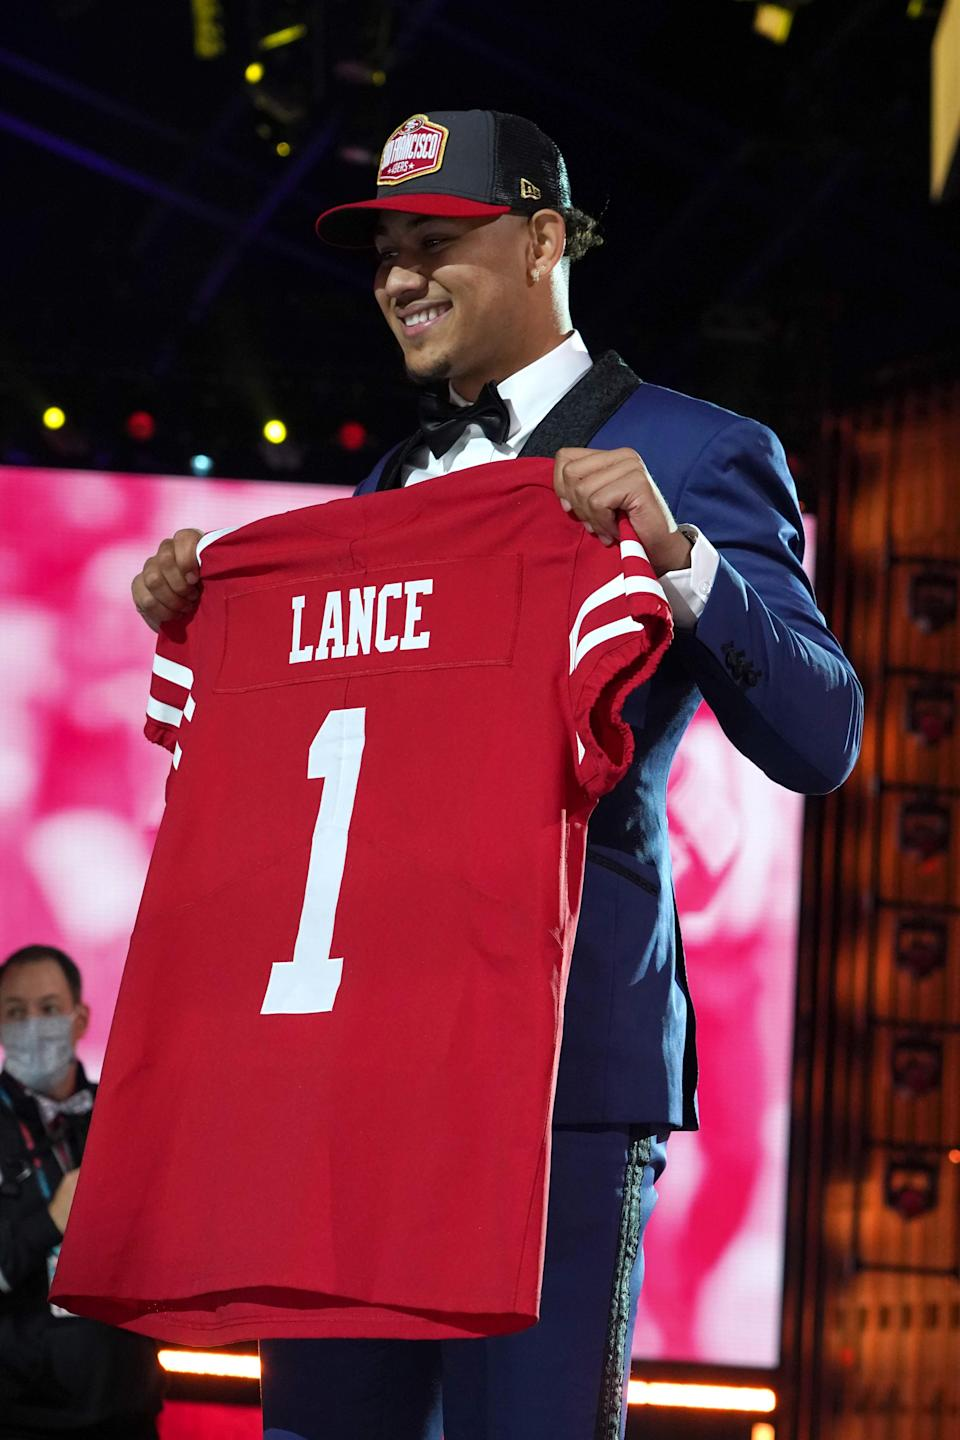 Trey Lance poses with a jersey after being selected as the third pick by the San Francisco 49ers.